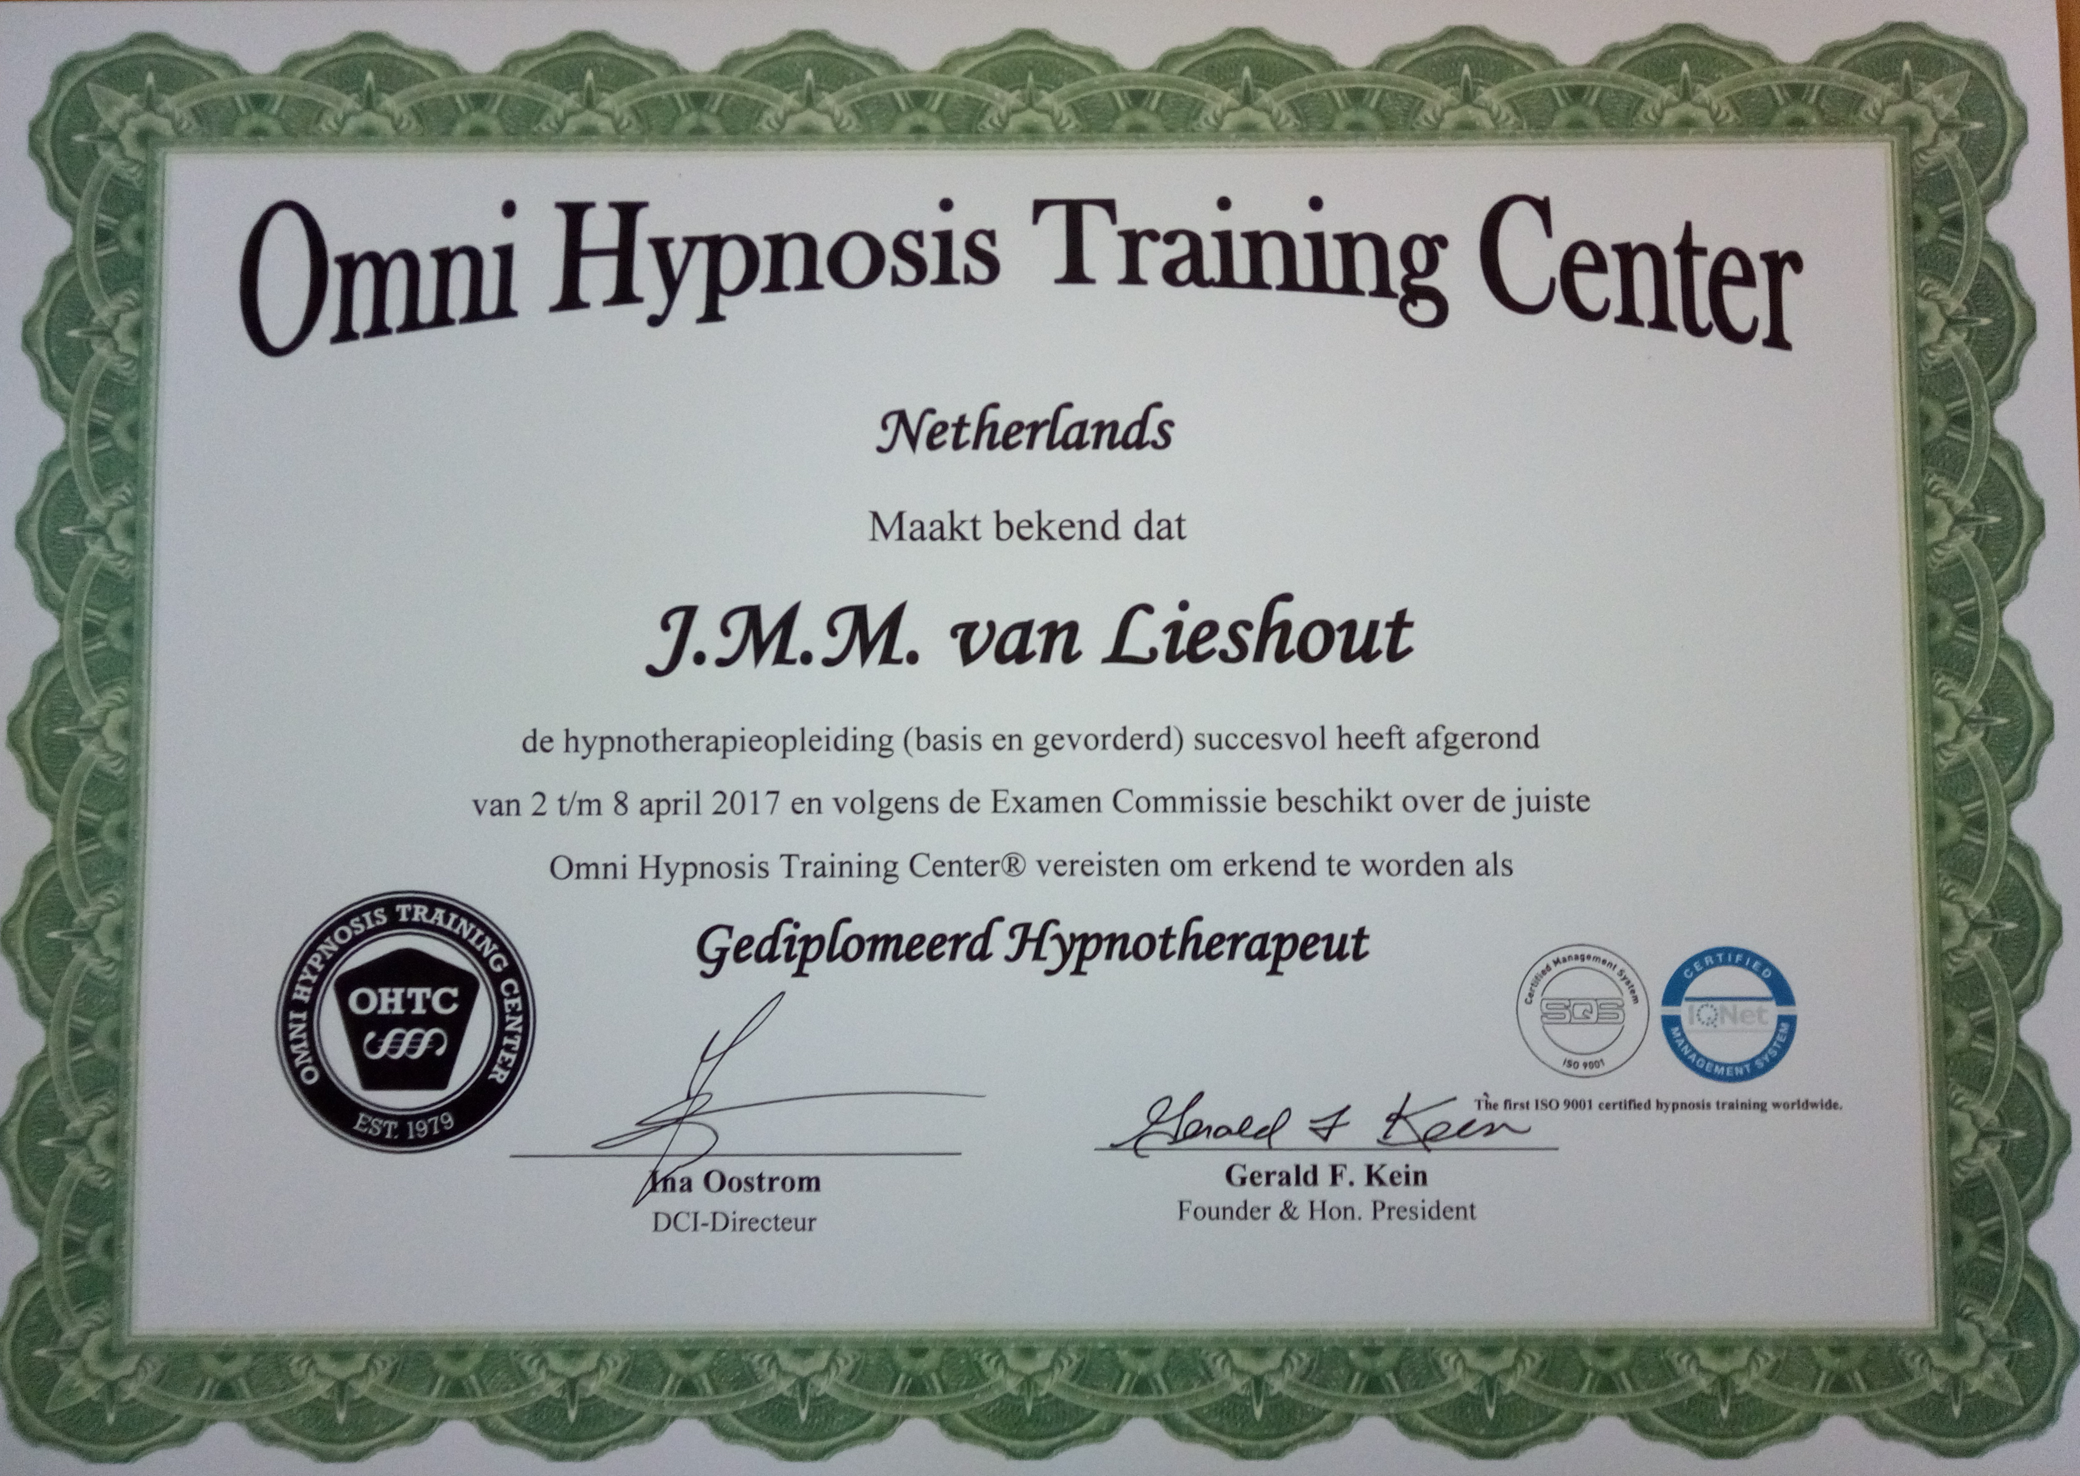 Omni Hypnosis Training Center